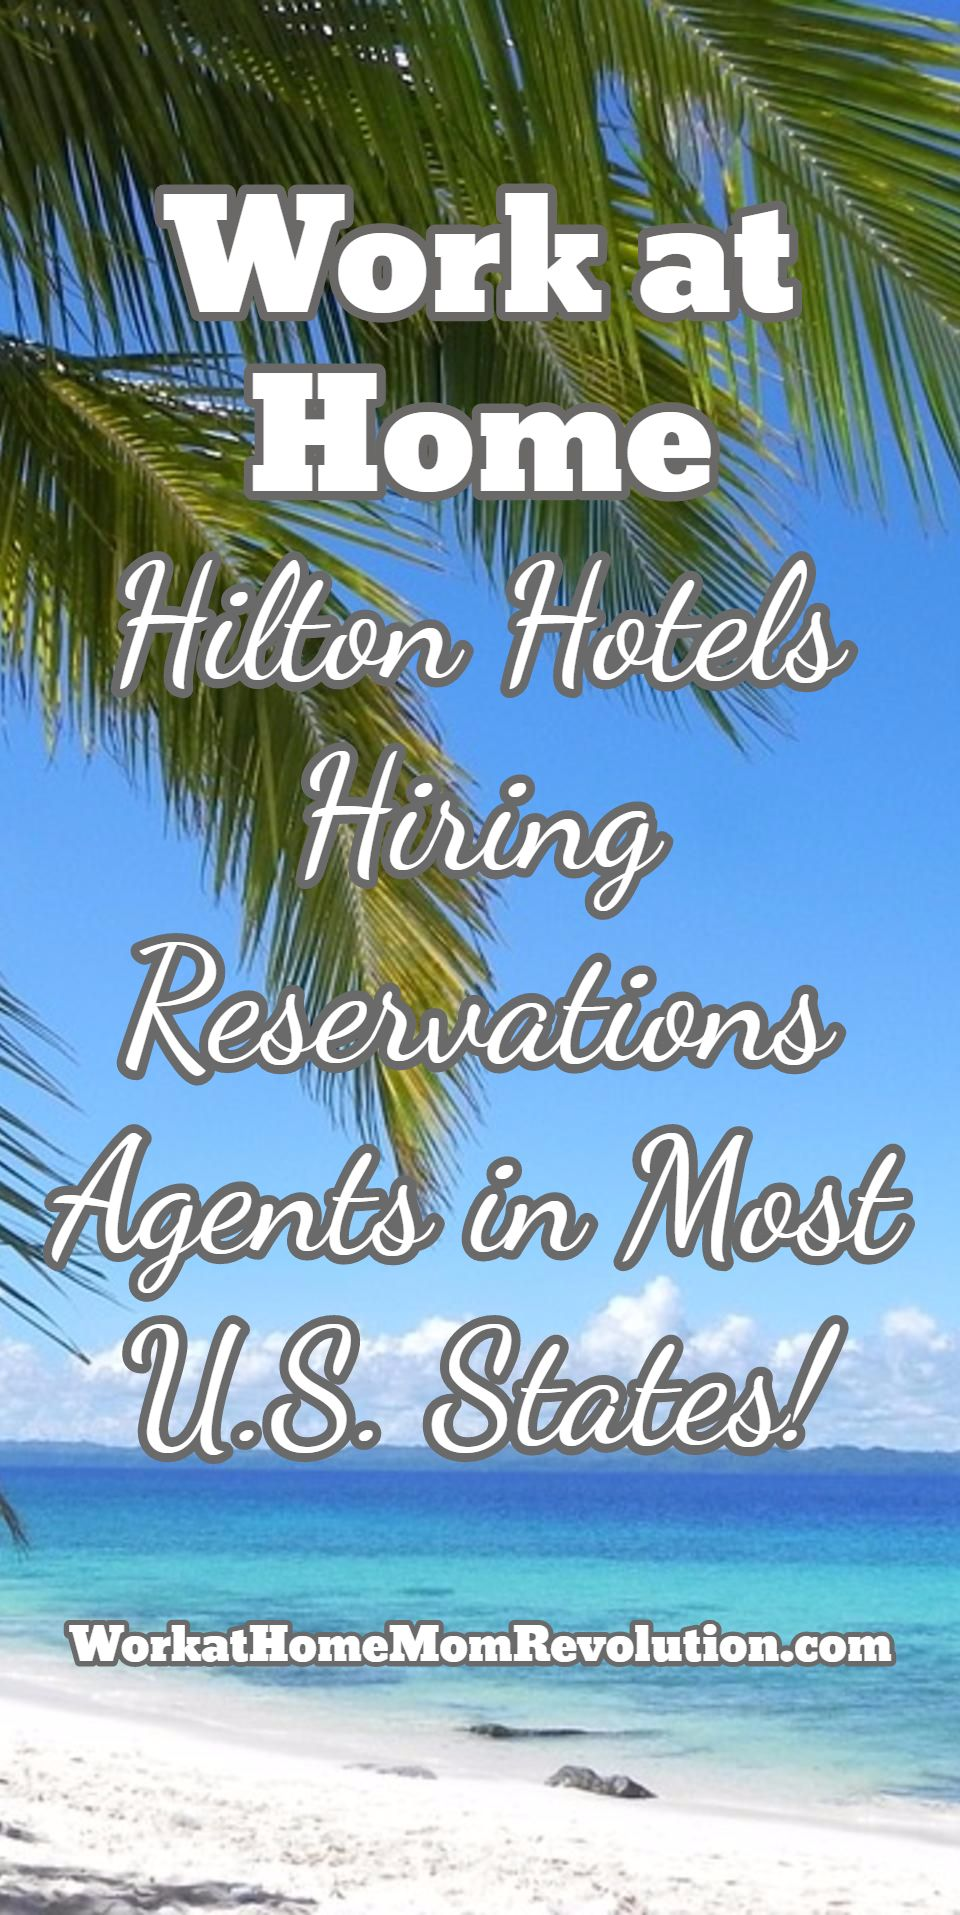 Hilton Hiring Work At Home Reservations Agents In U S